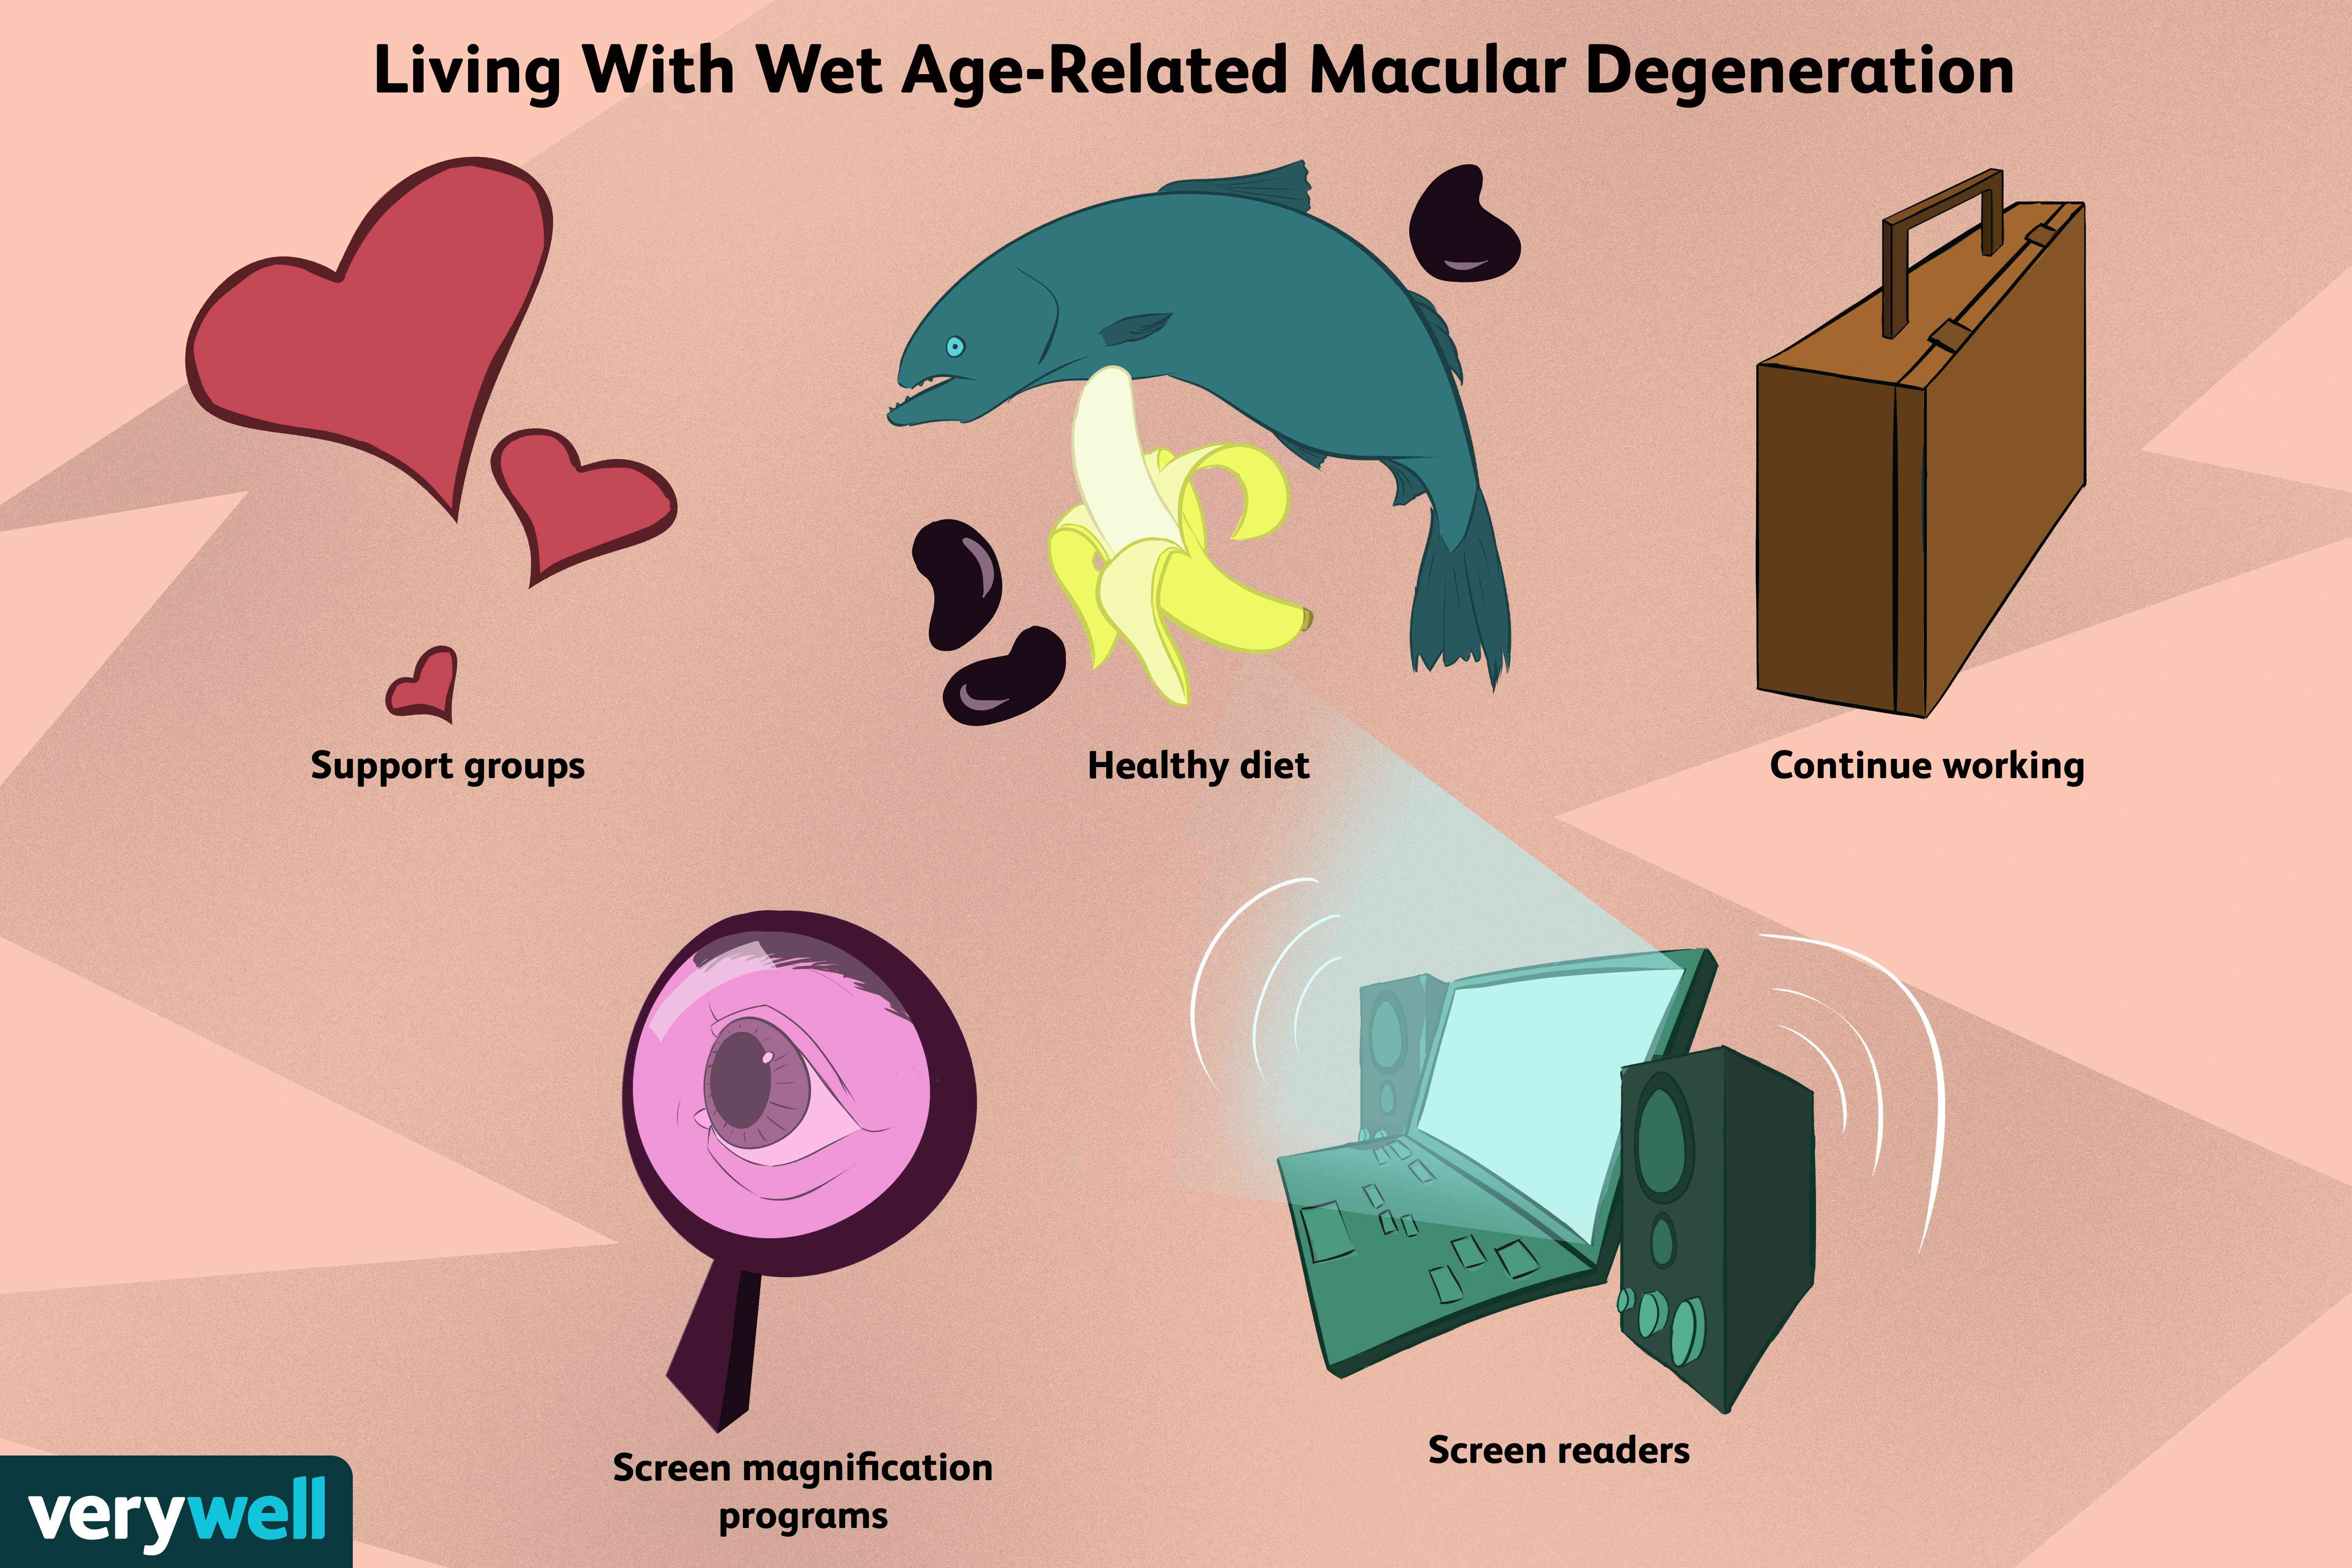 living with wet age-related macular degeneration